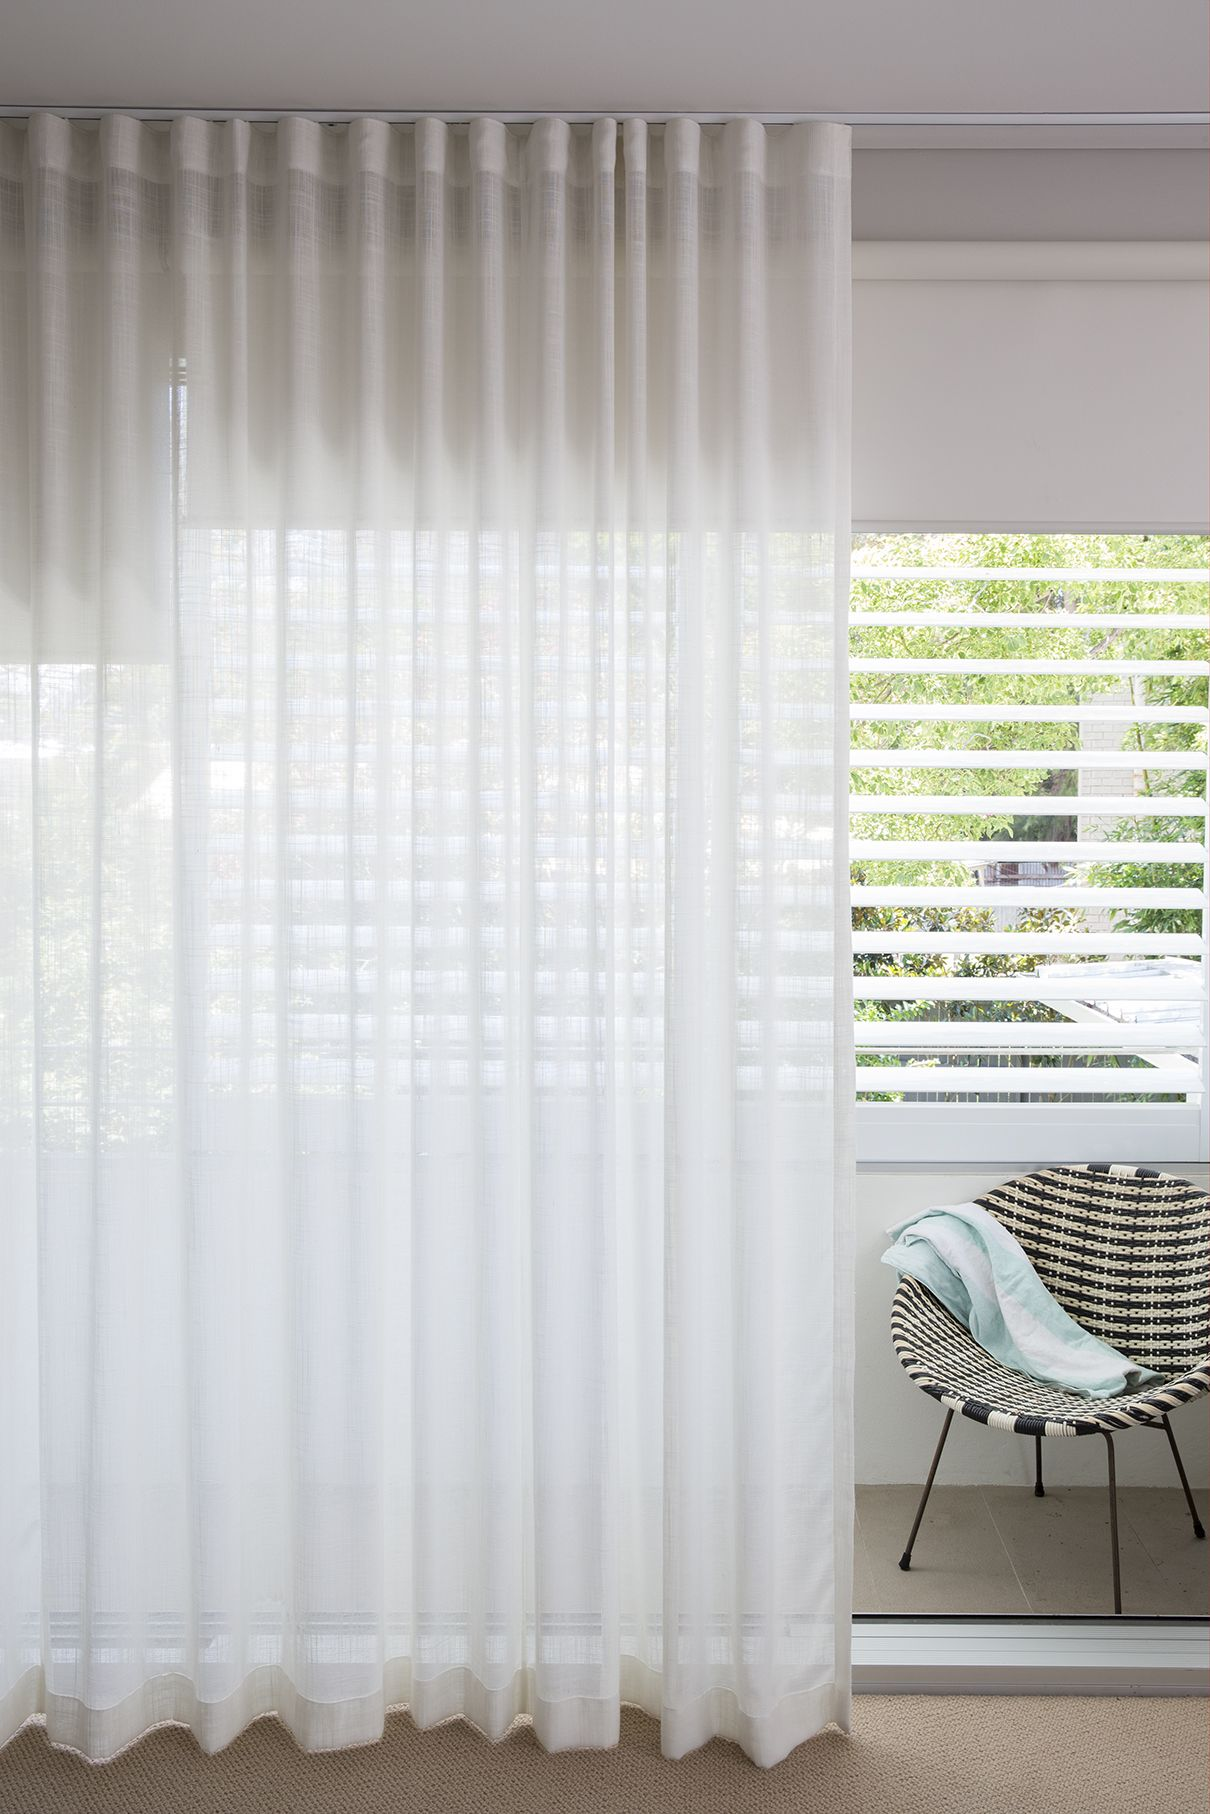 Window coverings shutters  curtainsbedroommaing   窗纱  pinterest  window